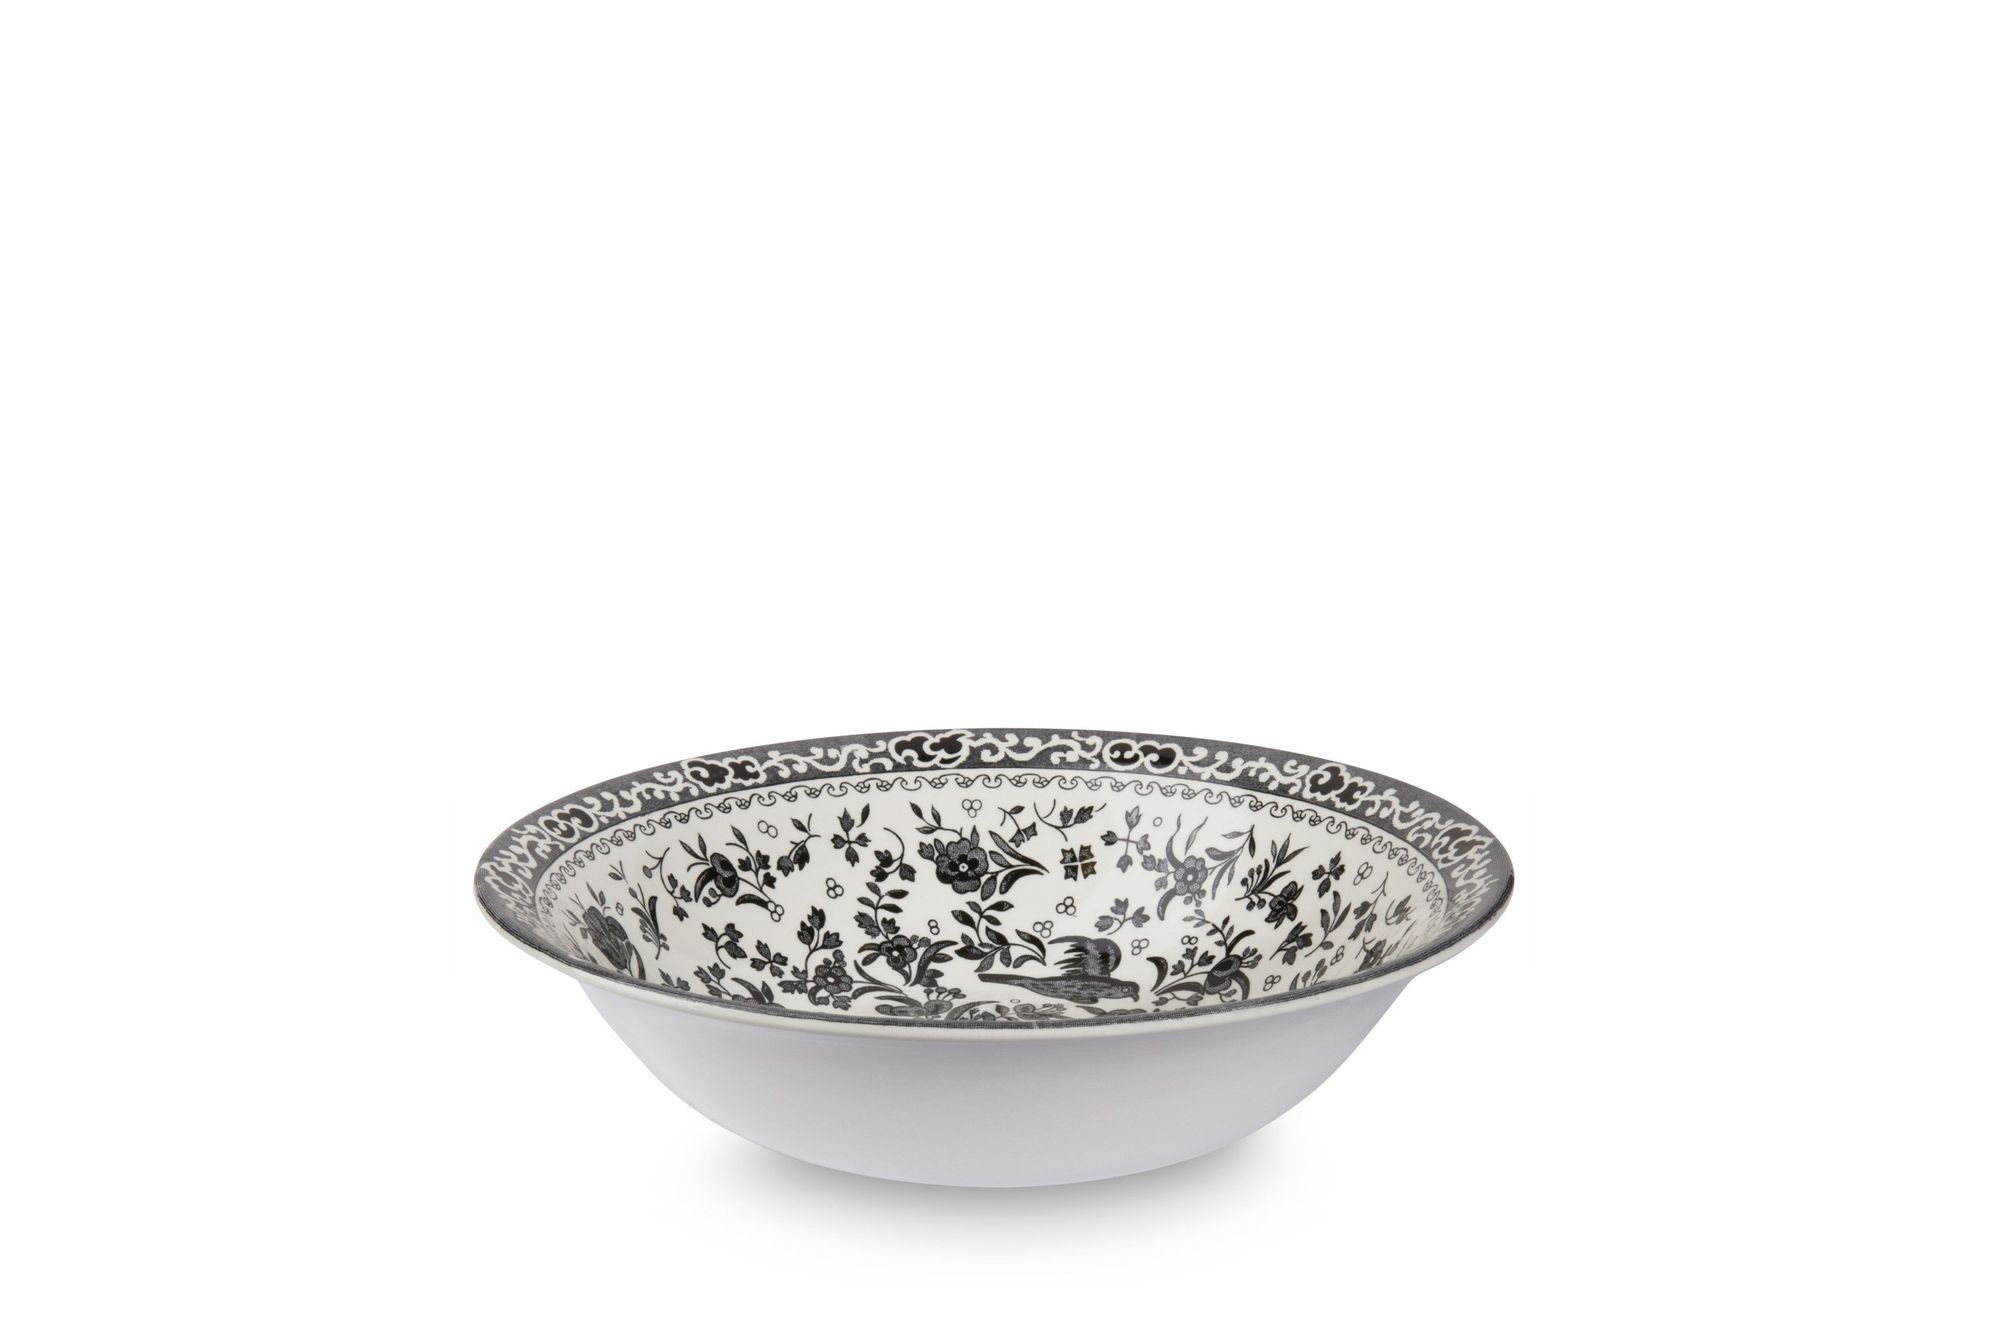 Burleigh Black Regal Peacock Soup Bowl thumb 1